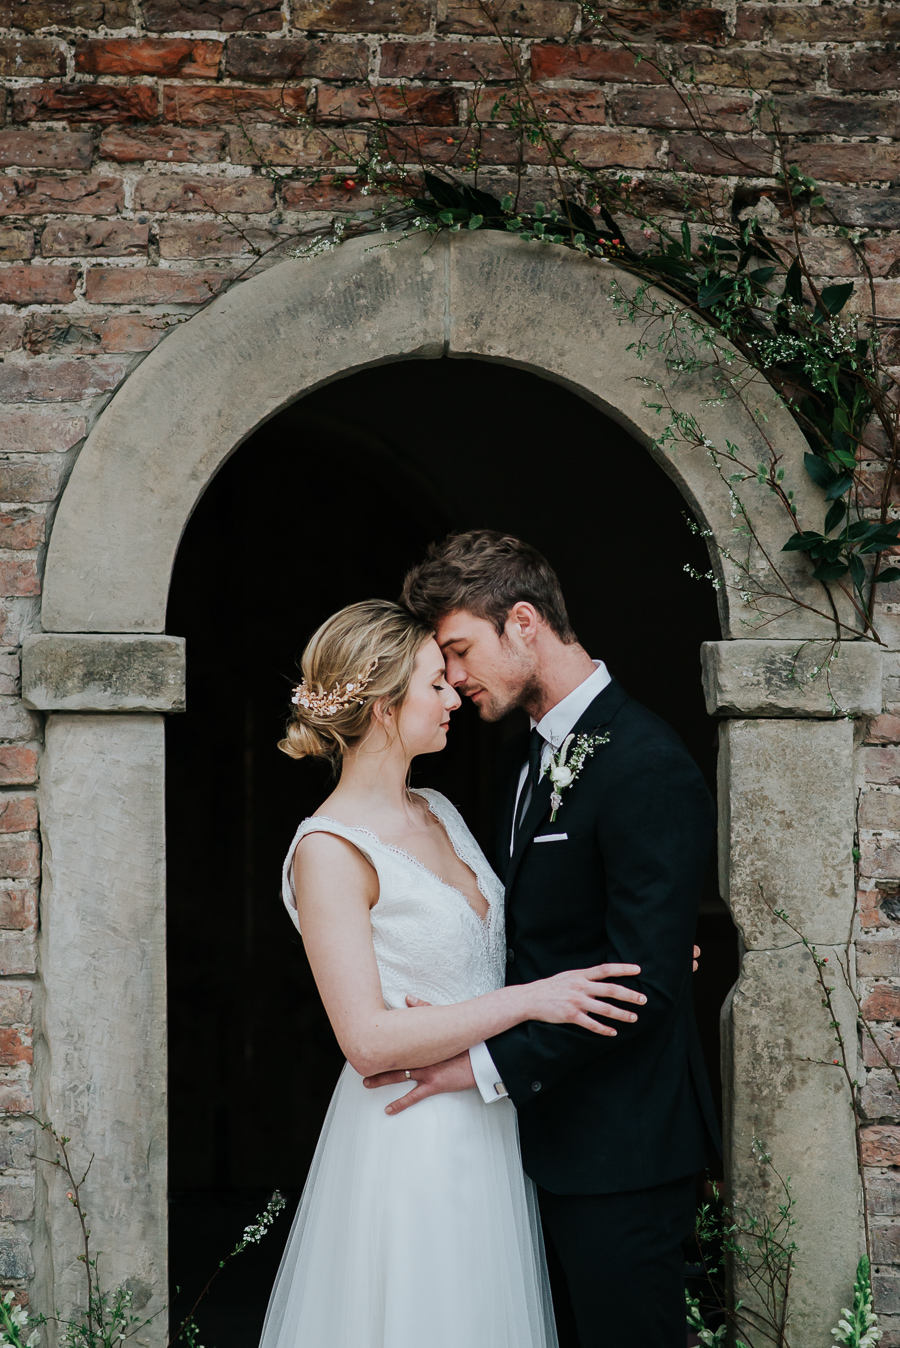 Michelle Cordner Photography on the English Wedding Blog (26)